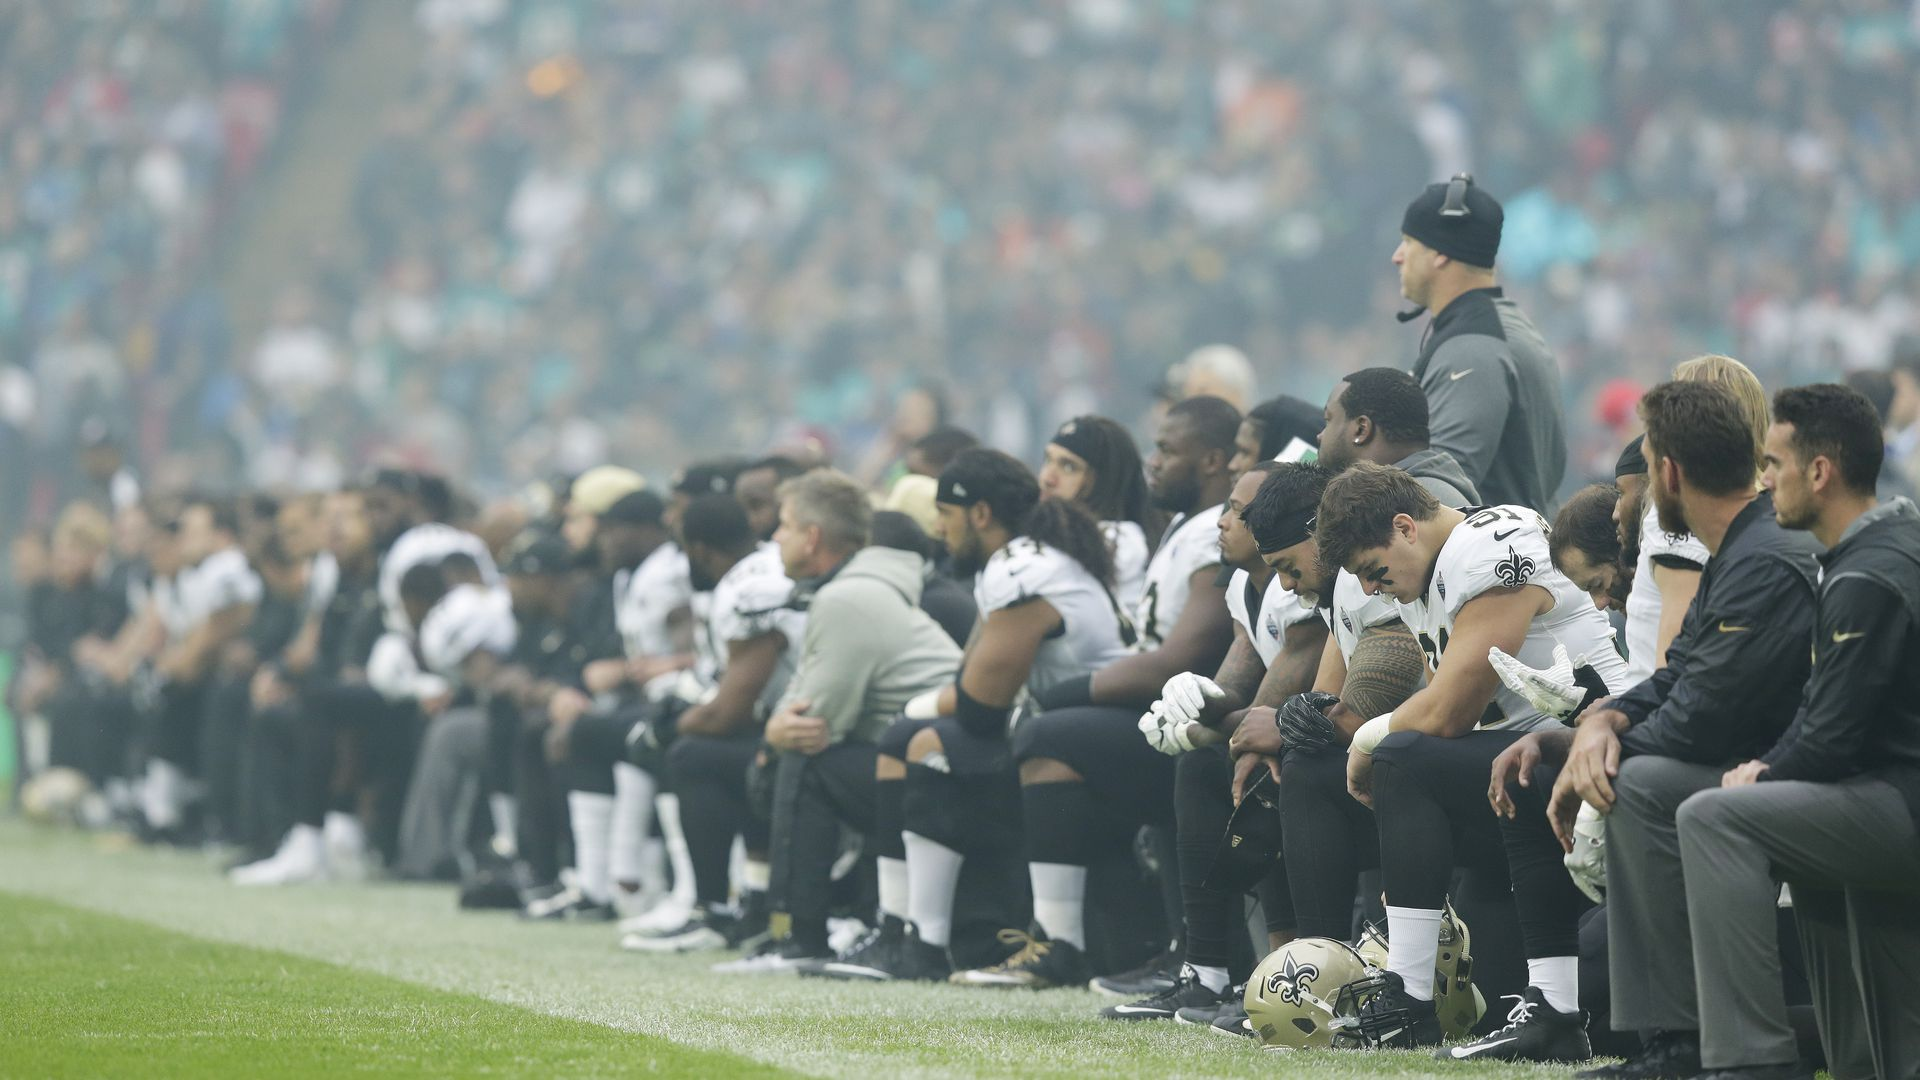 The New Orleans Saints players kneel before the anthem is played.